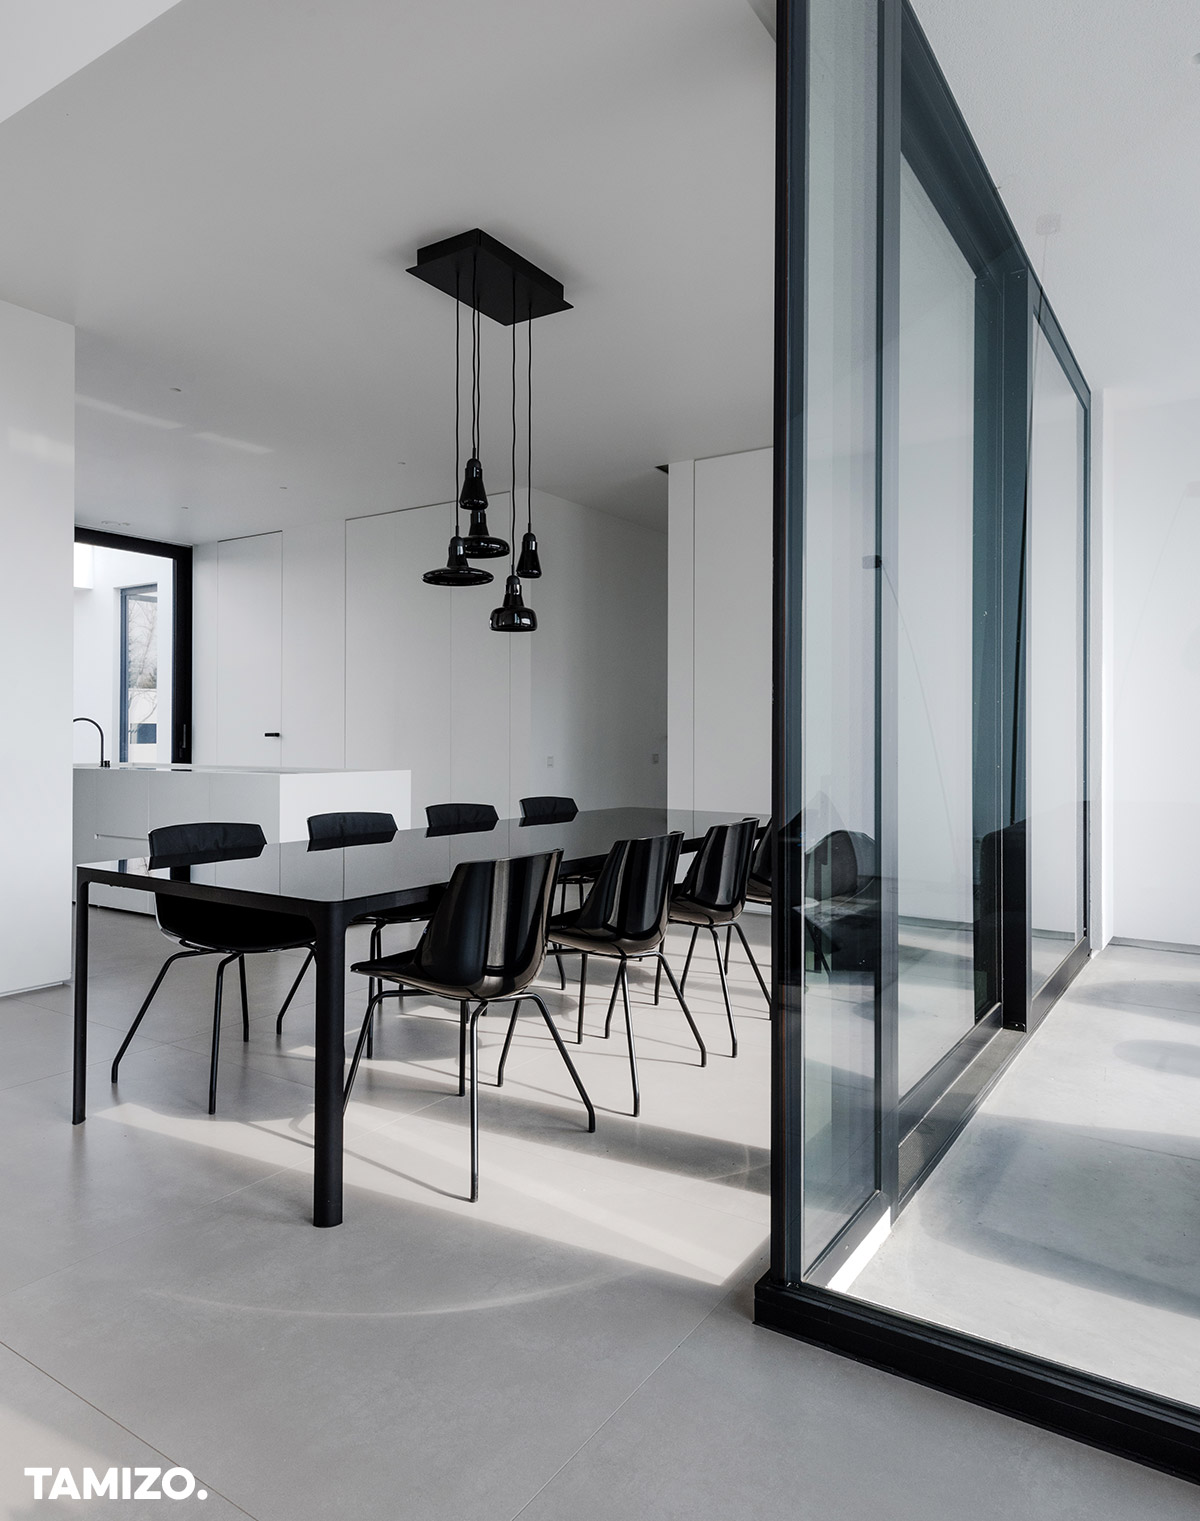 013_tamizo_architects_interior_house_realization_warsaw_poland_27